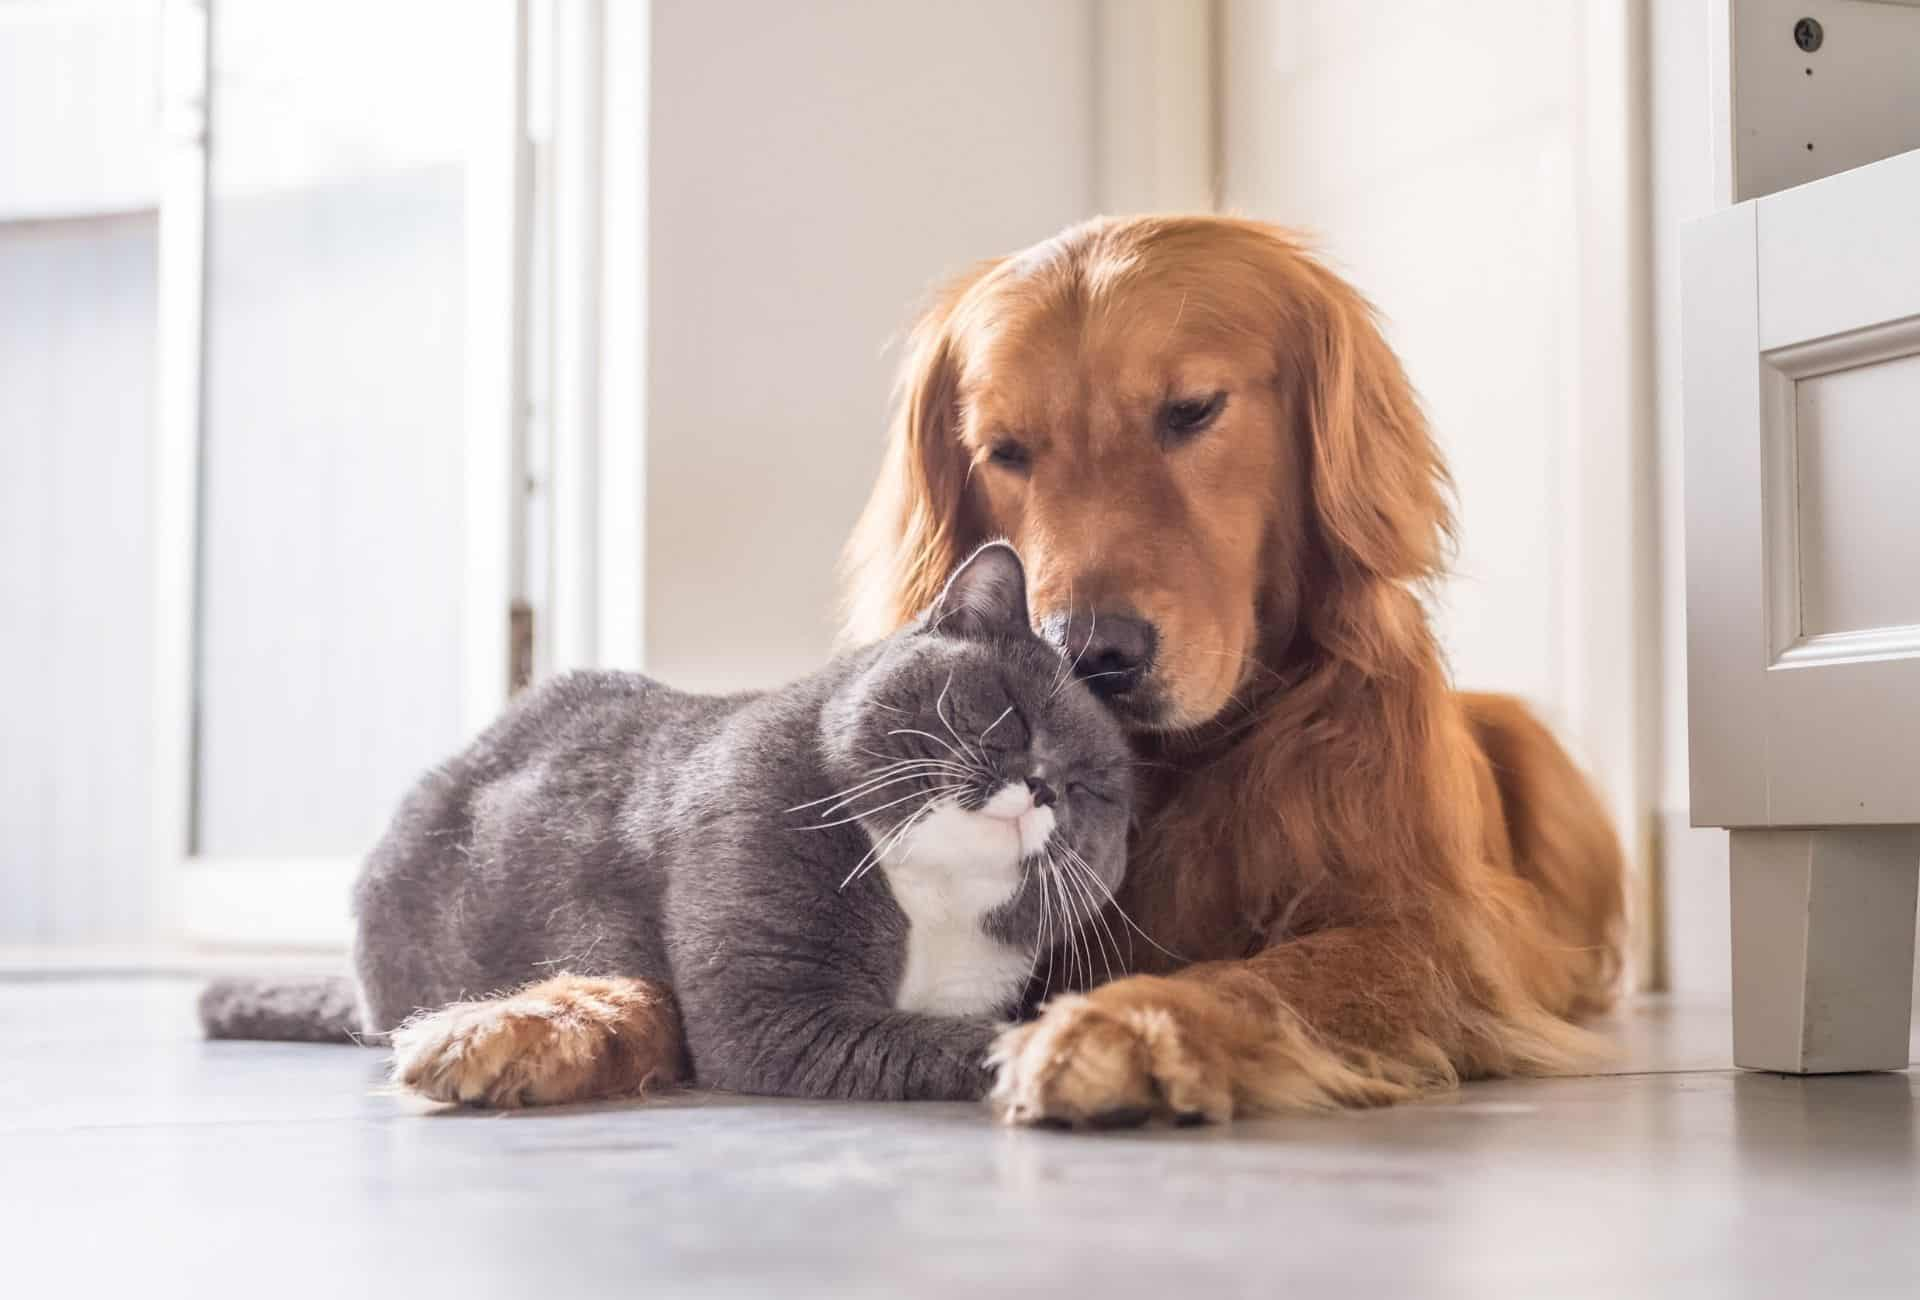 Cat cuddles with dog